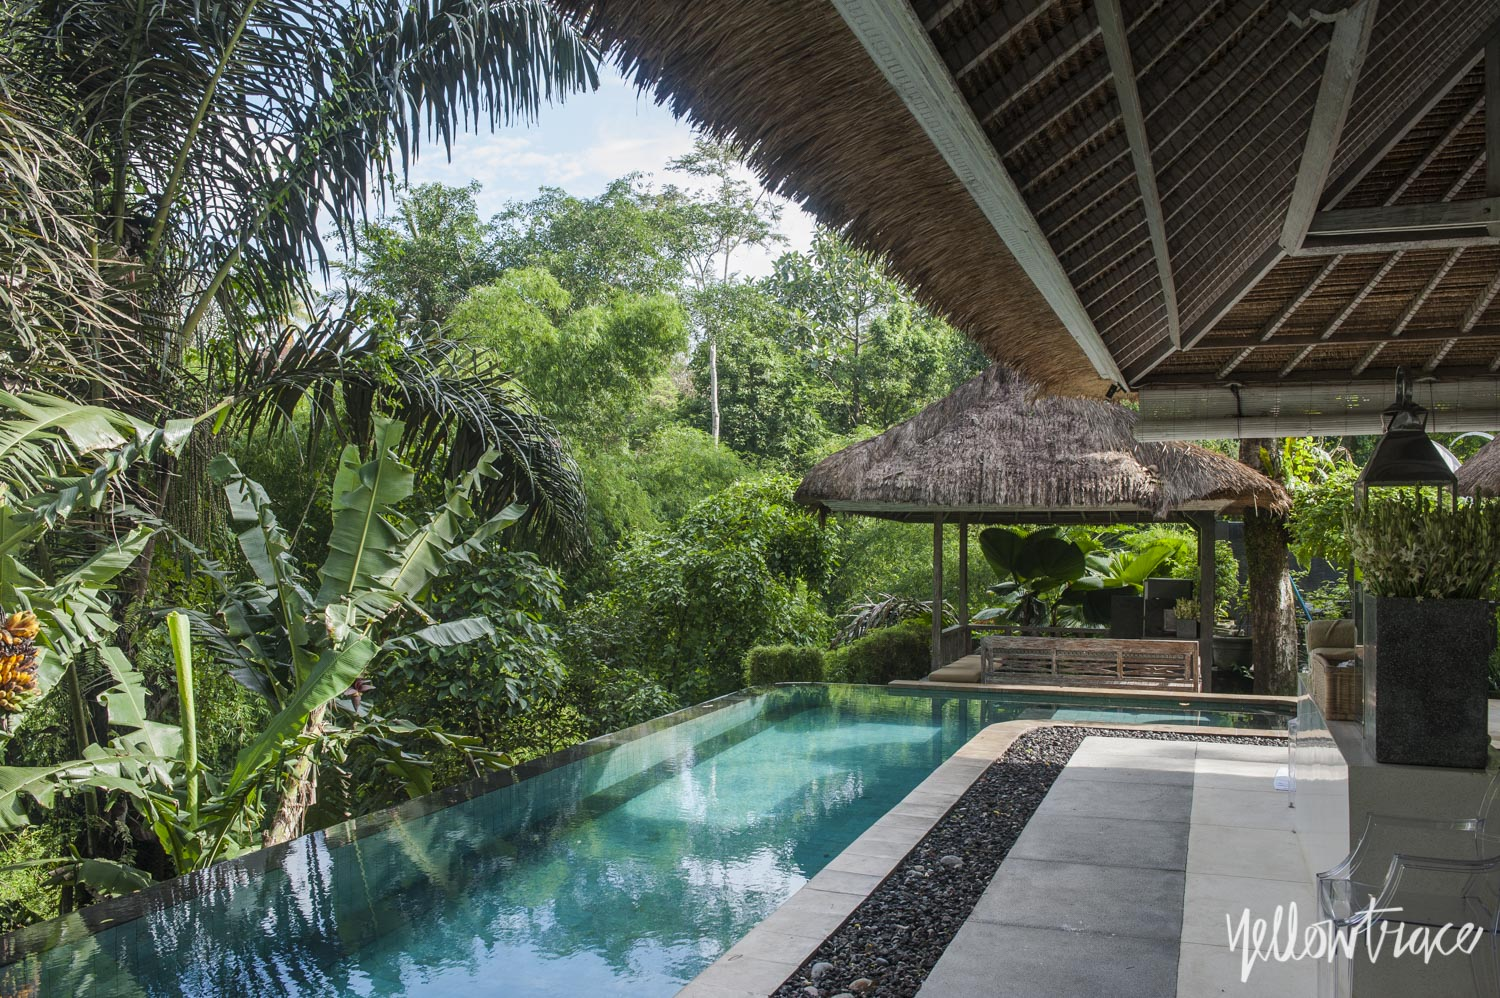 Villa Sungai Gold, Photo © Nick Hughes | Yellowtrace